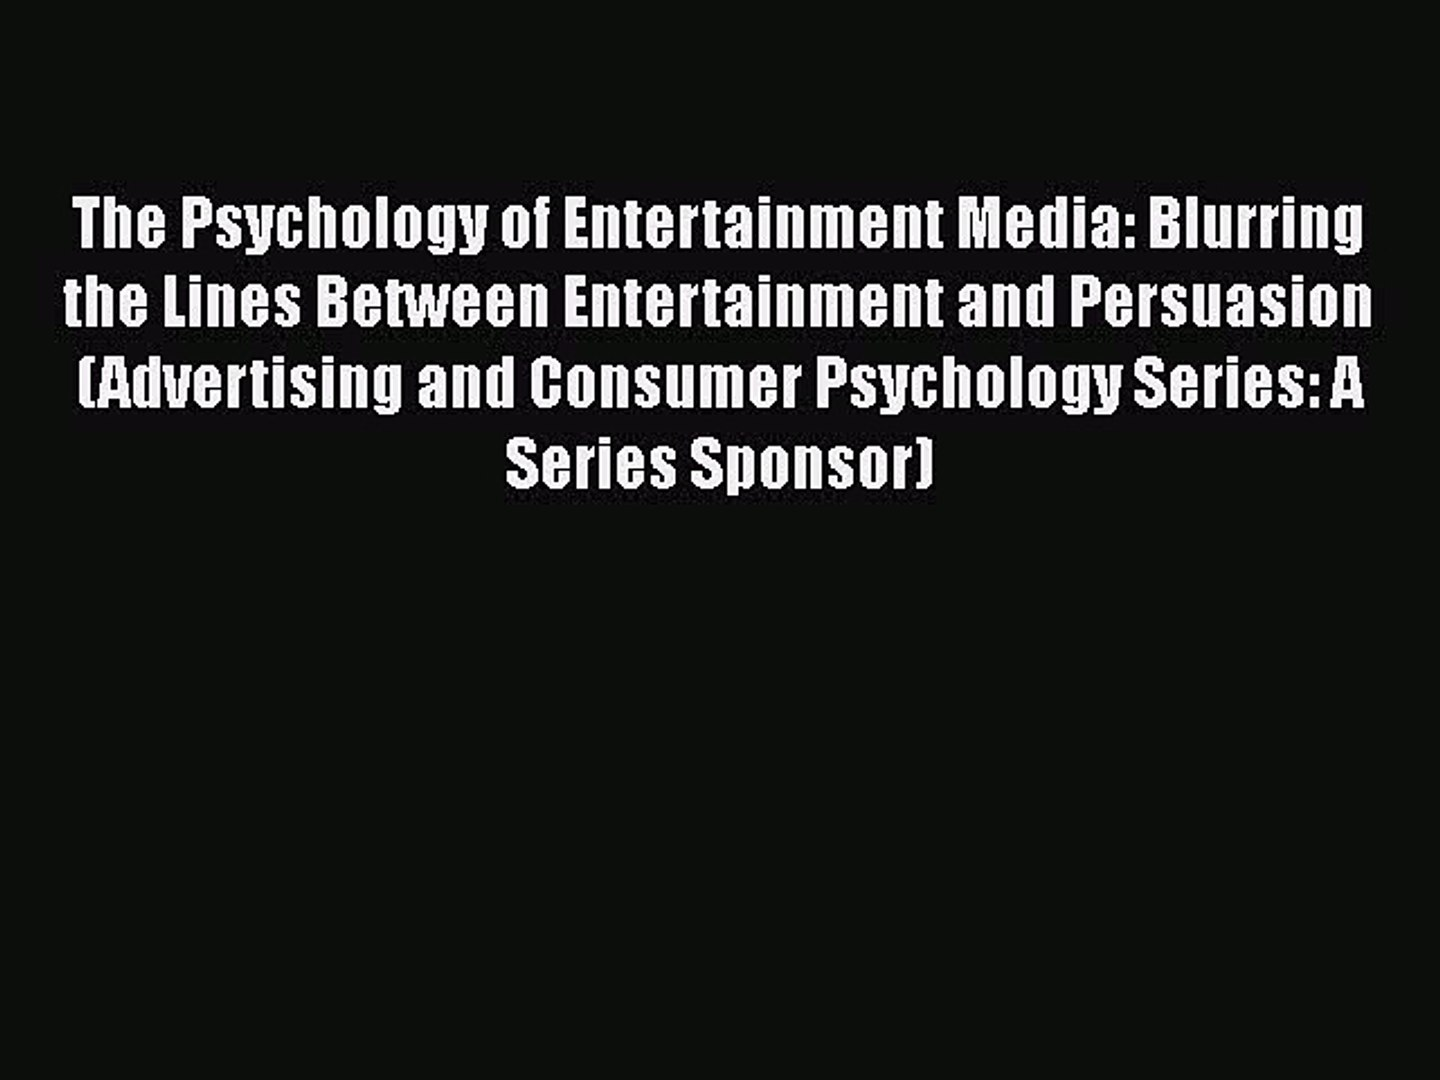 [Read book] The Psychology of Entertainment Media: Blurring the Lines Between Entertainment